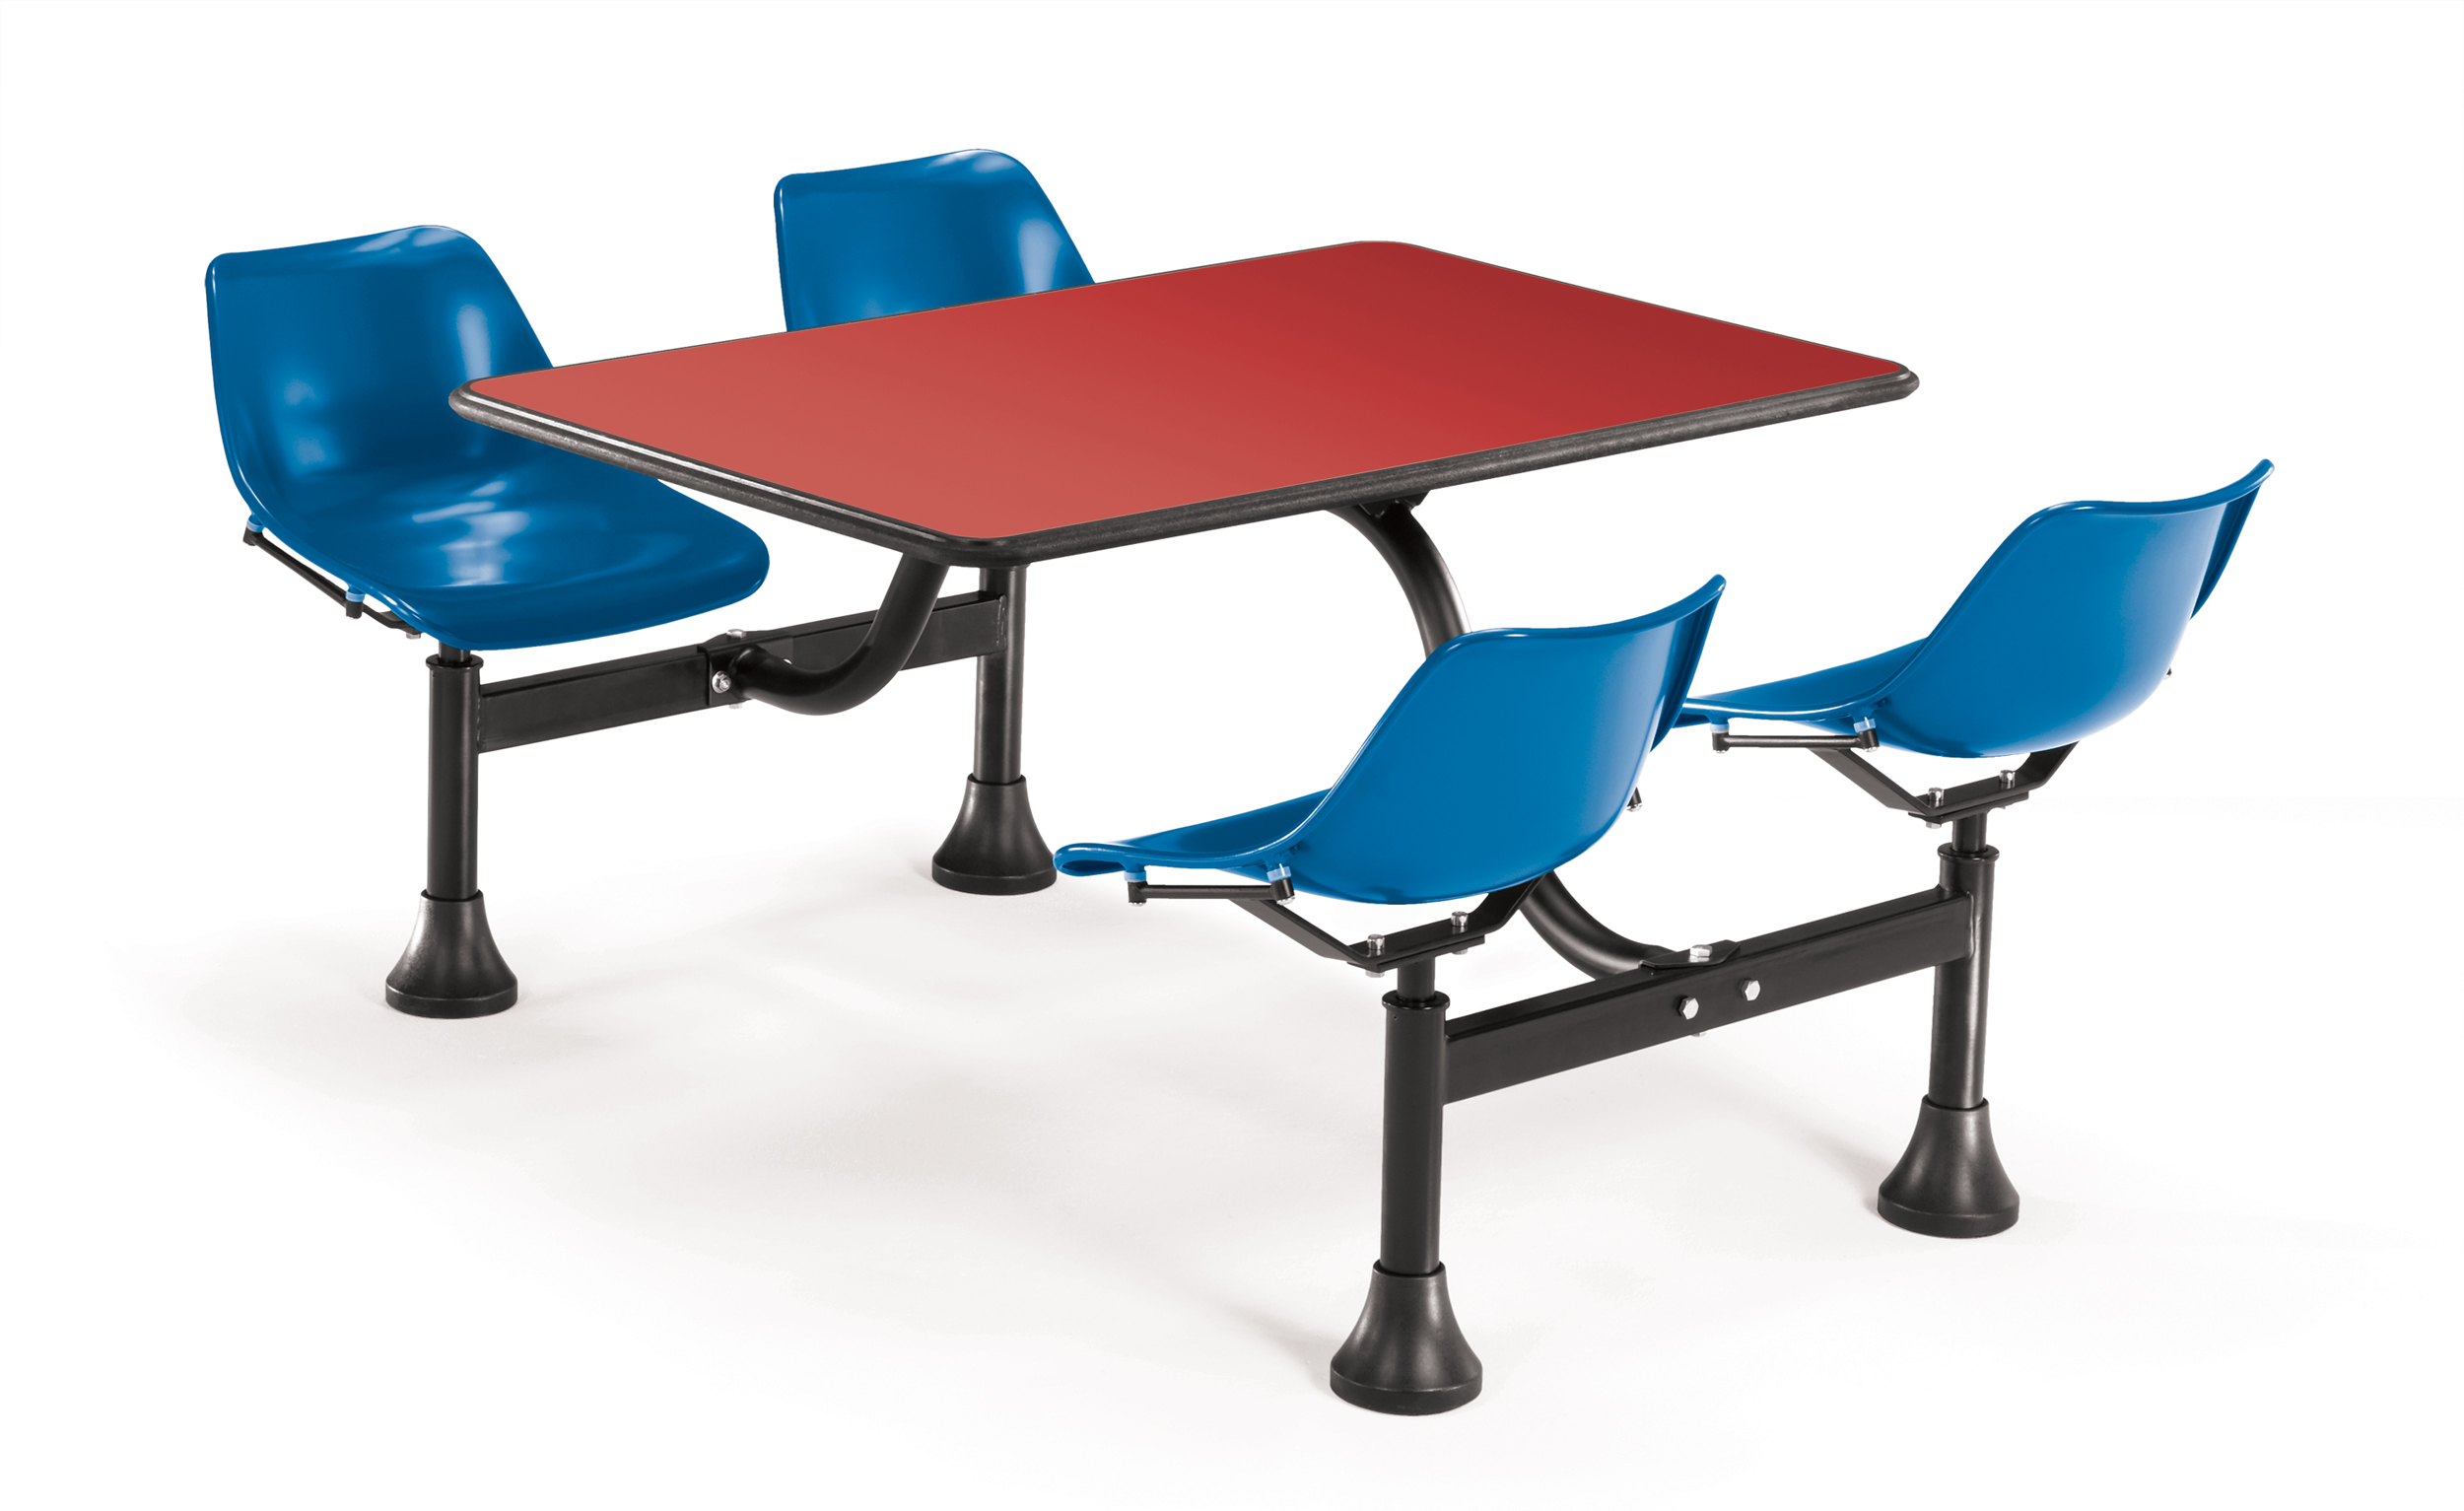 1002-BLUE-RED Group Seating Restaurant outdoor furniture cluster table Red top attached 4 Blue swivel seat 250 lbs... by ofminc